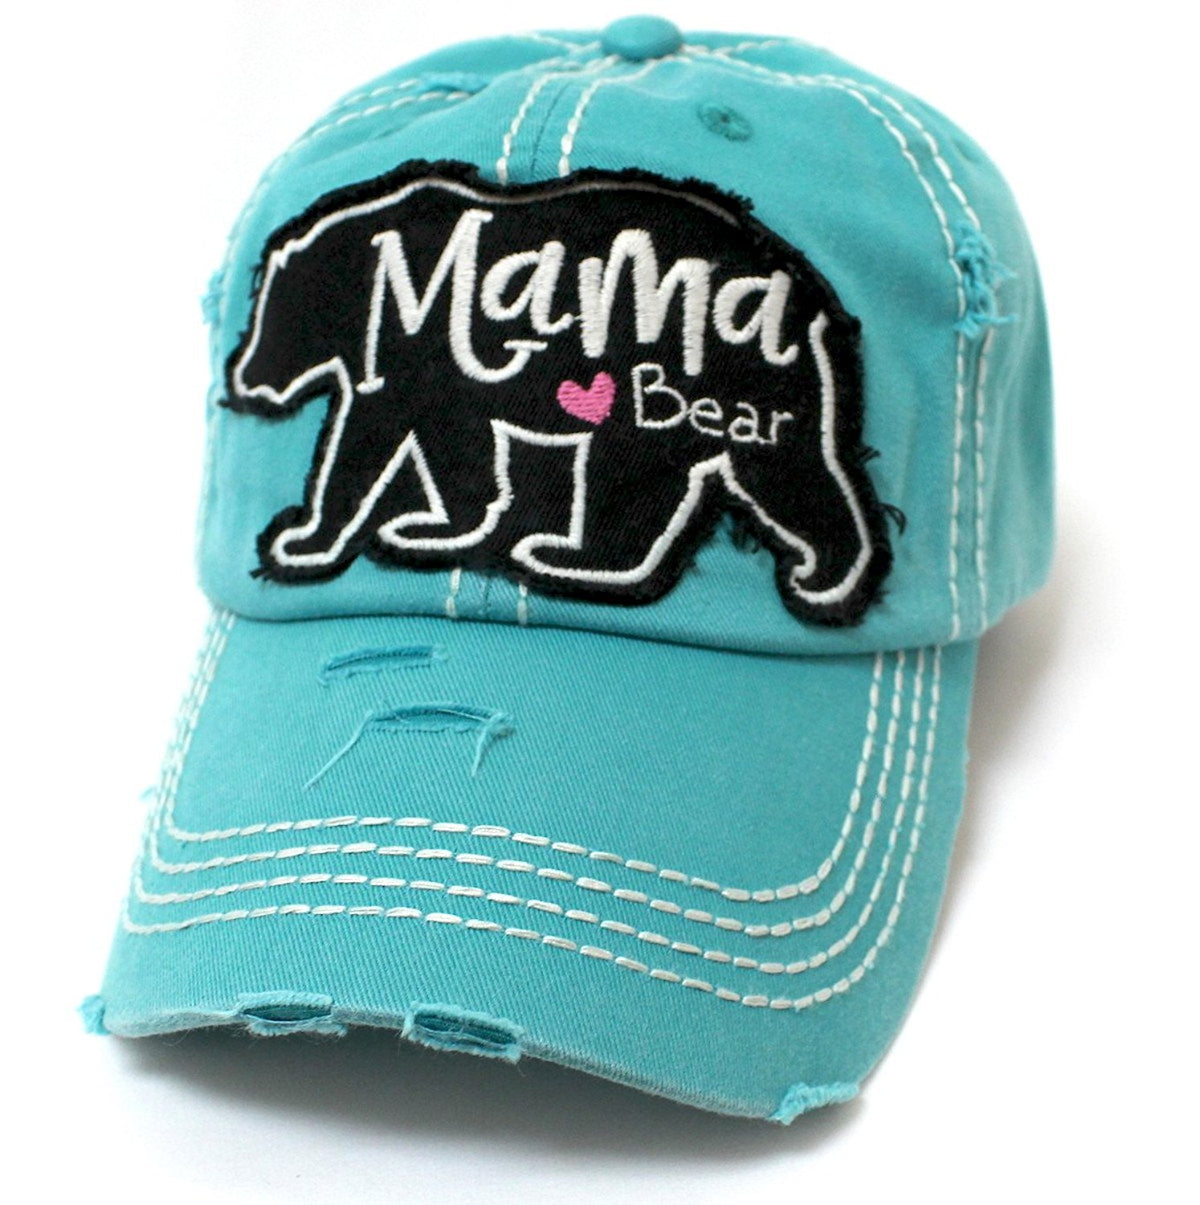 CAPS 'N VINTAGE Mama <3 Bear Geometric Shape Patch Embroidery Hat - Caps 'N Vintage